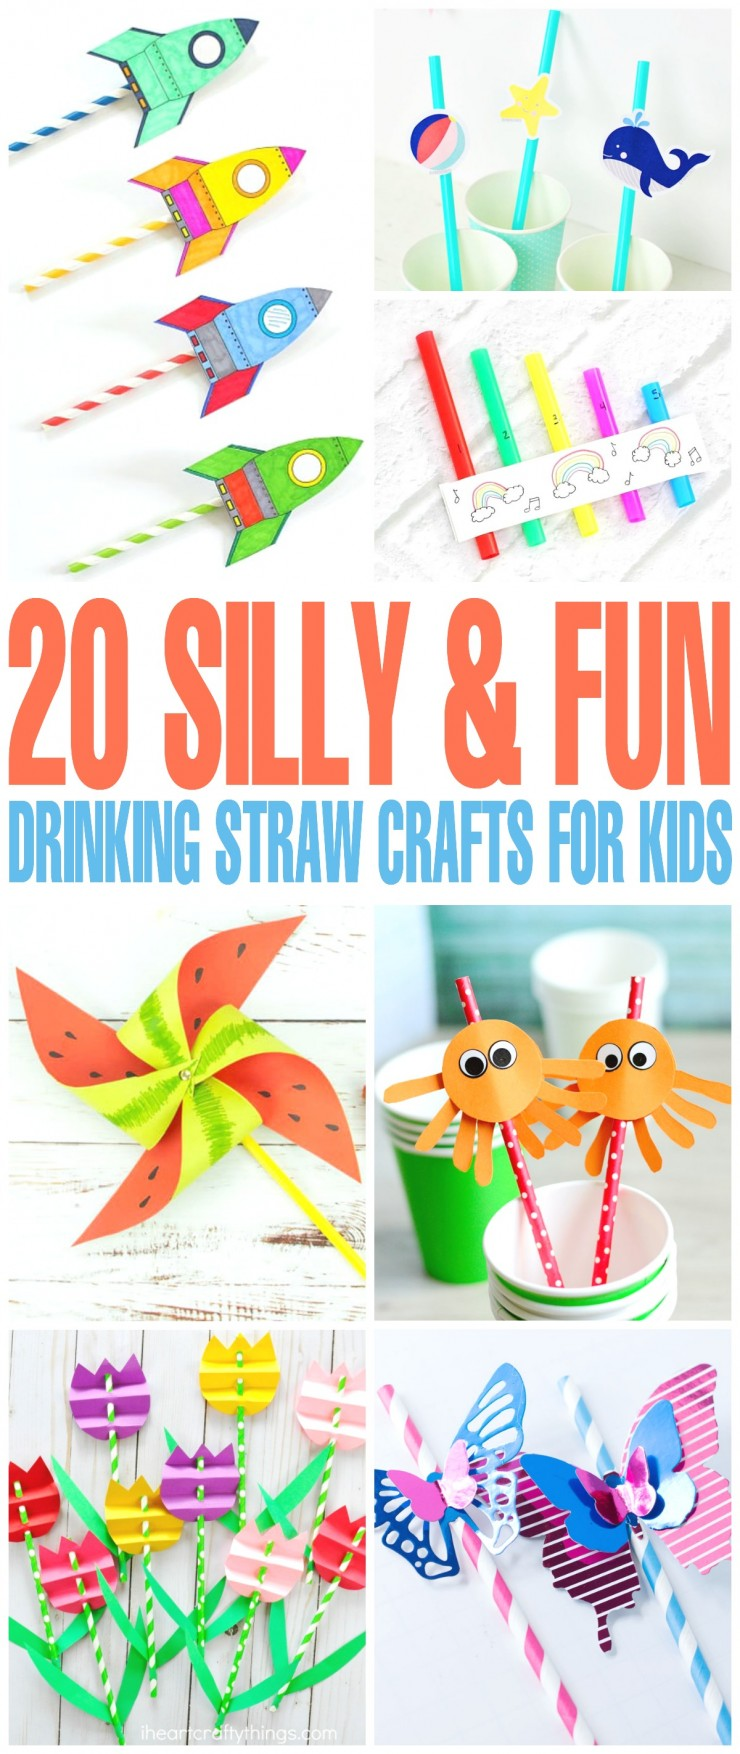 Looking for inexpensive crafts to make with straws? Check out these 20 silly & fun drinking straw crafts kids!